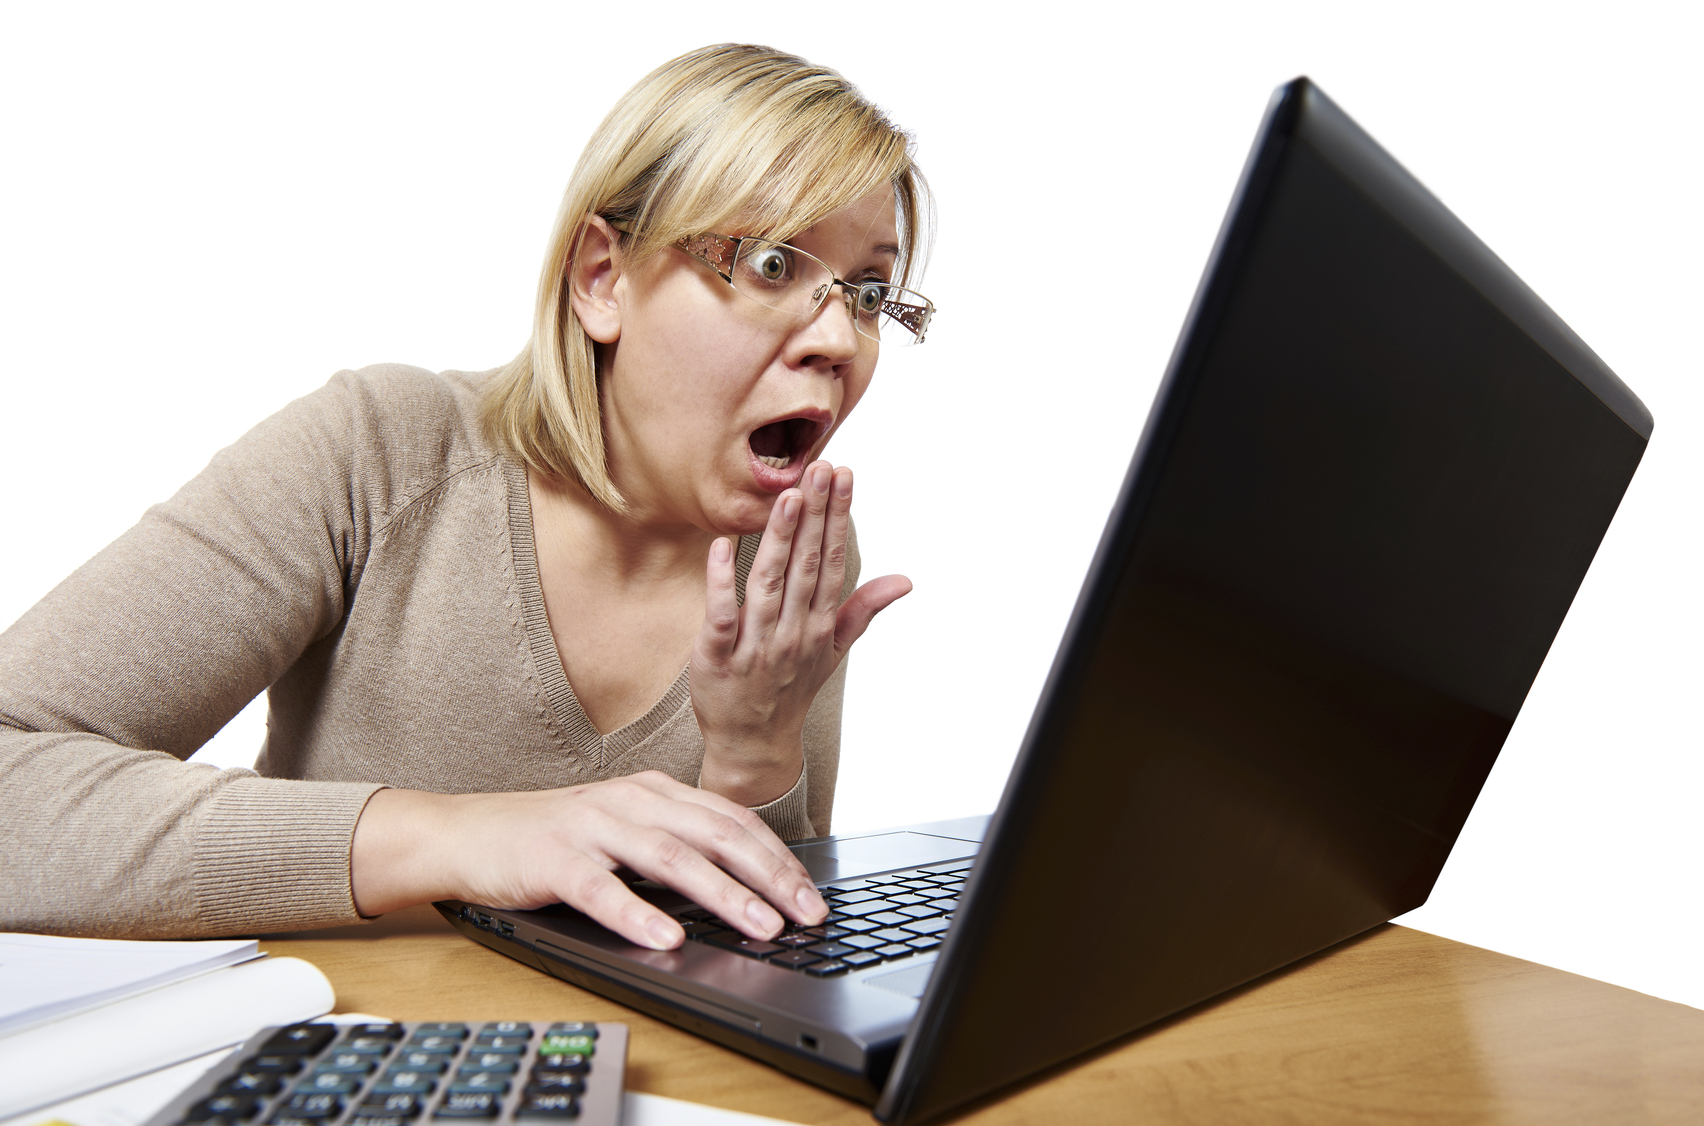 Frightened woman with glasses looking at laptop isolated